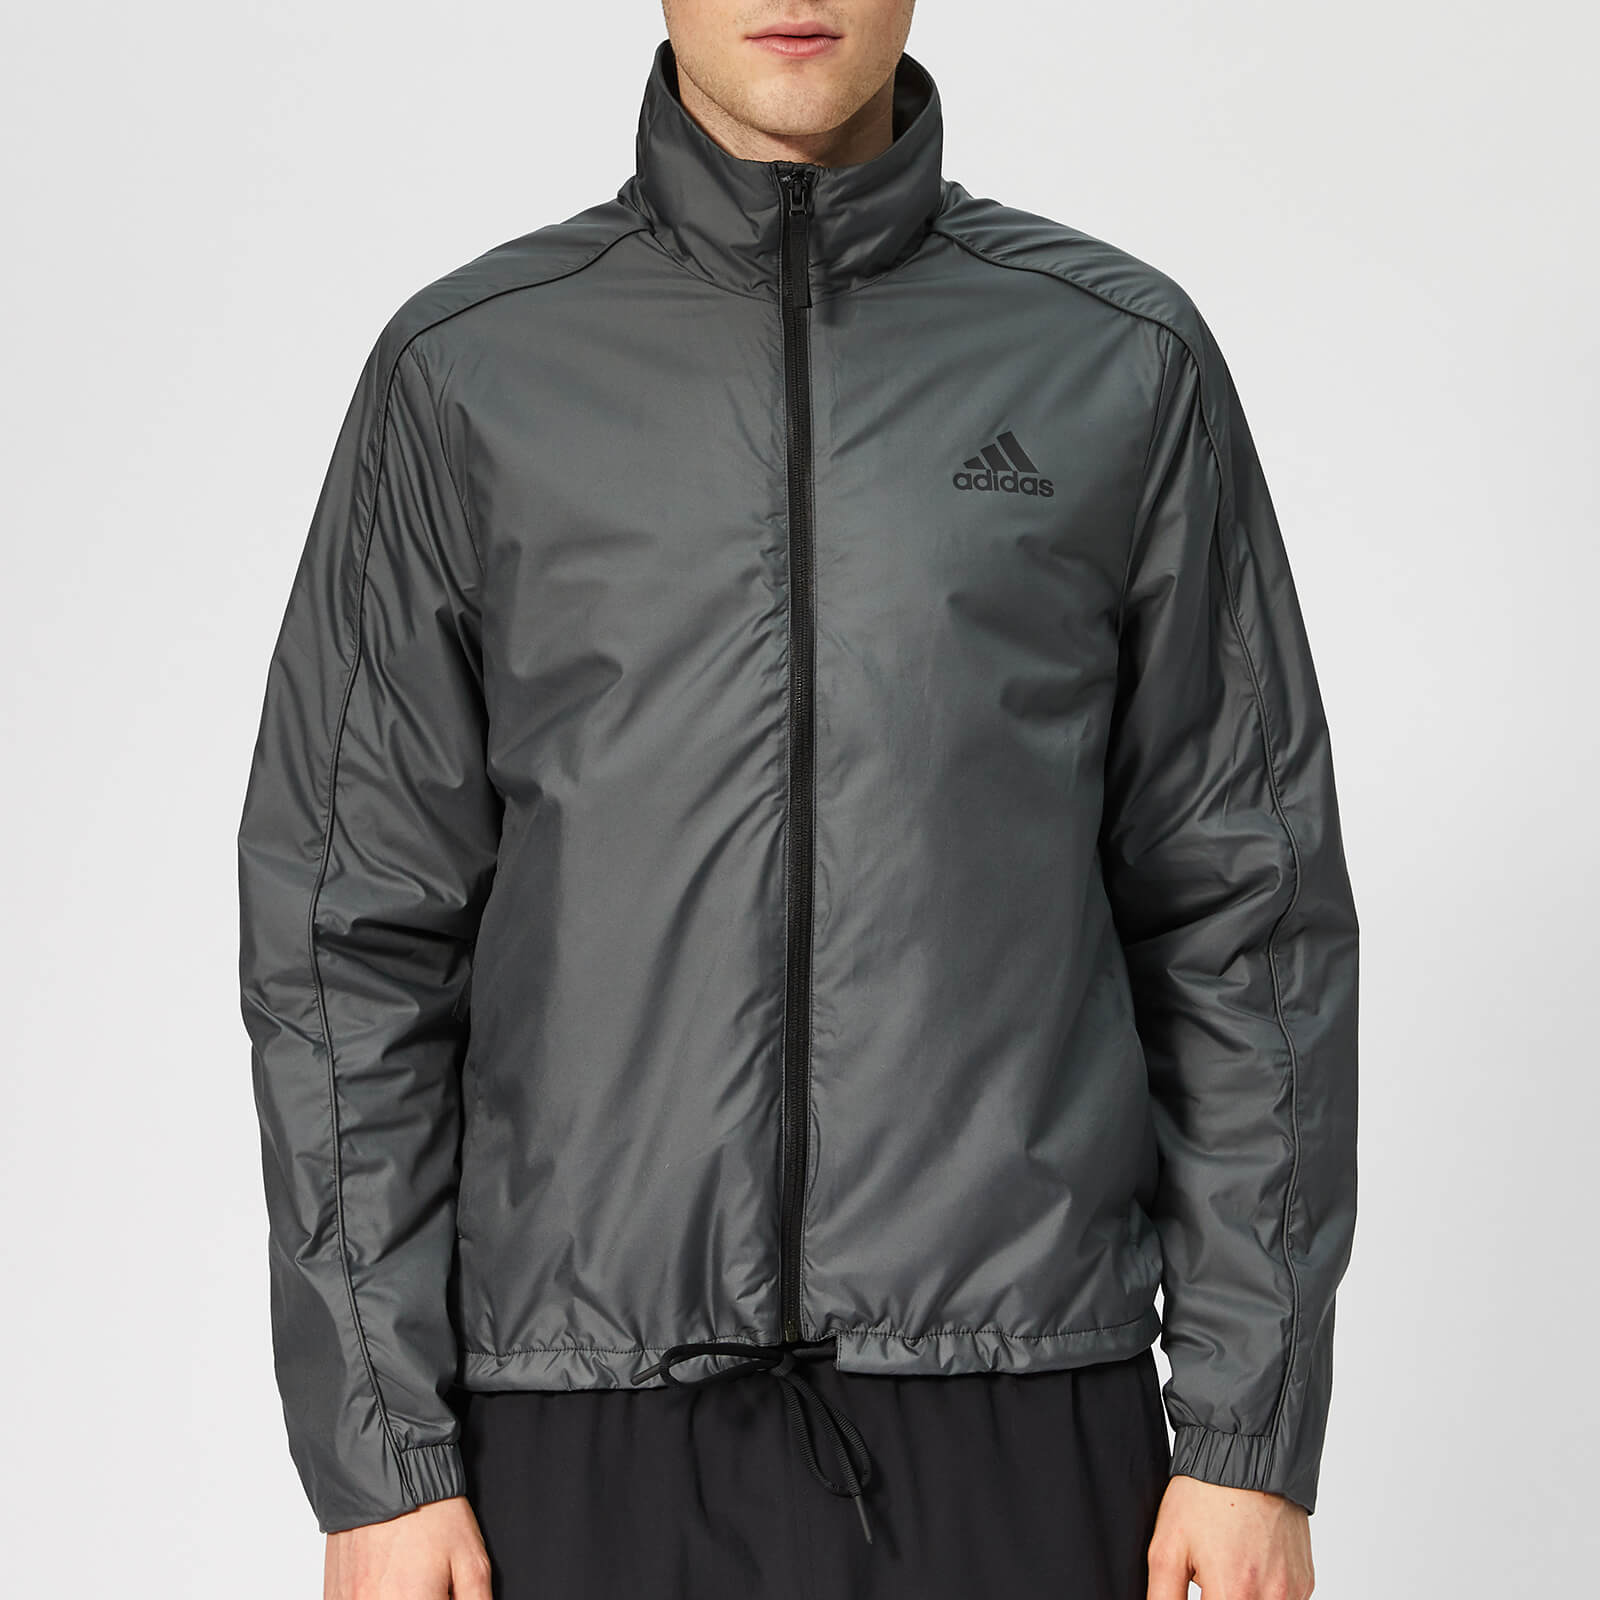 adidas Men's Terrex Light Insulated Jacket Carbon Sports